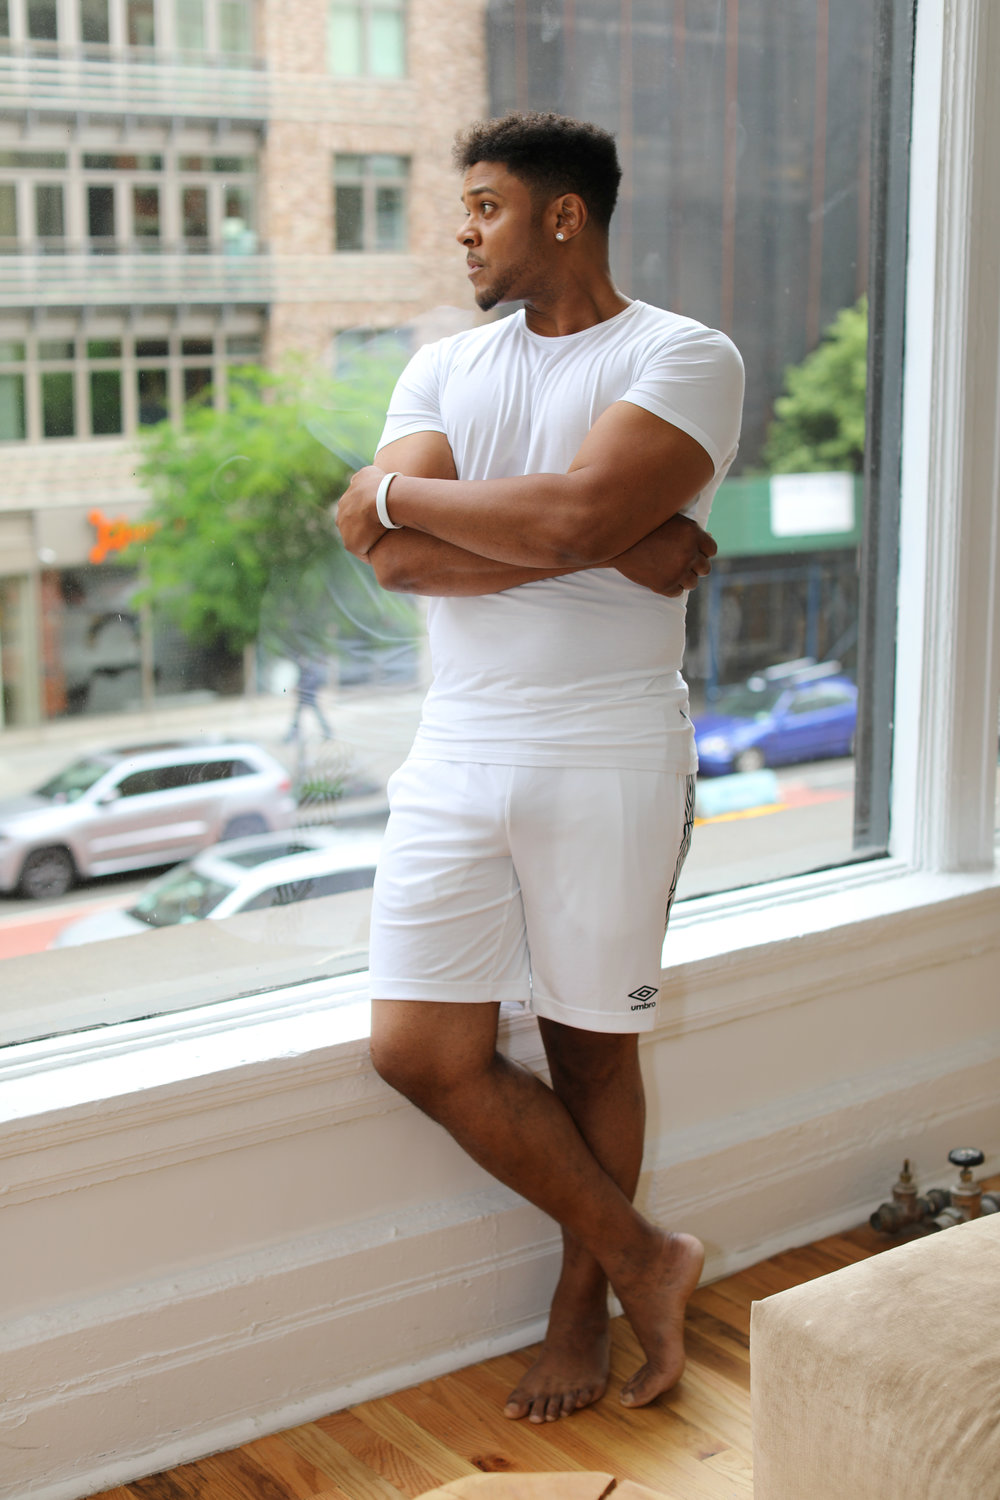 AM JUN HITTING THE STREETS WITH POOCH HALL-8.jpg